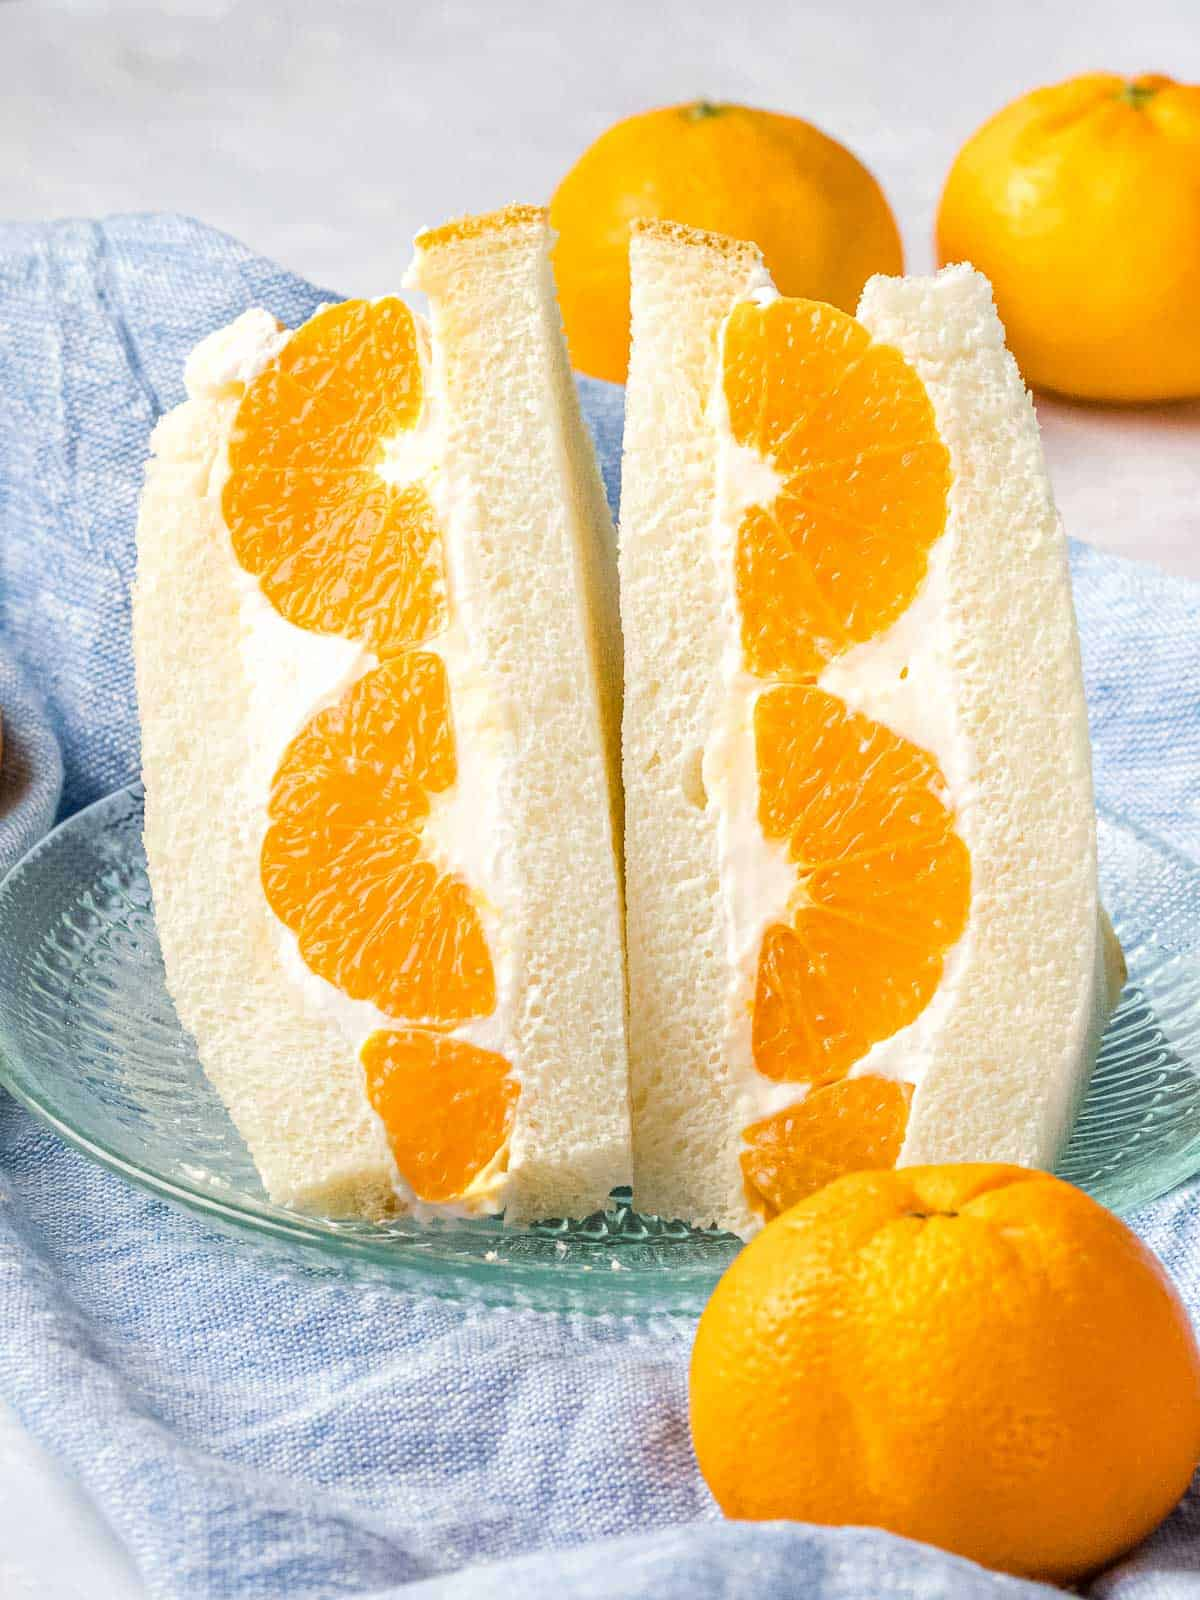 Japanese fruit sando made with mandarin oranges that's sliced in half on a glass plate.